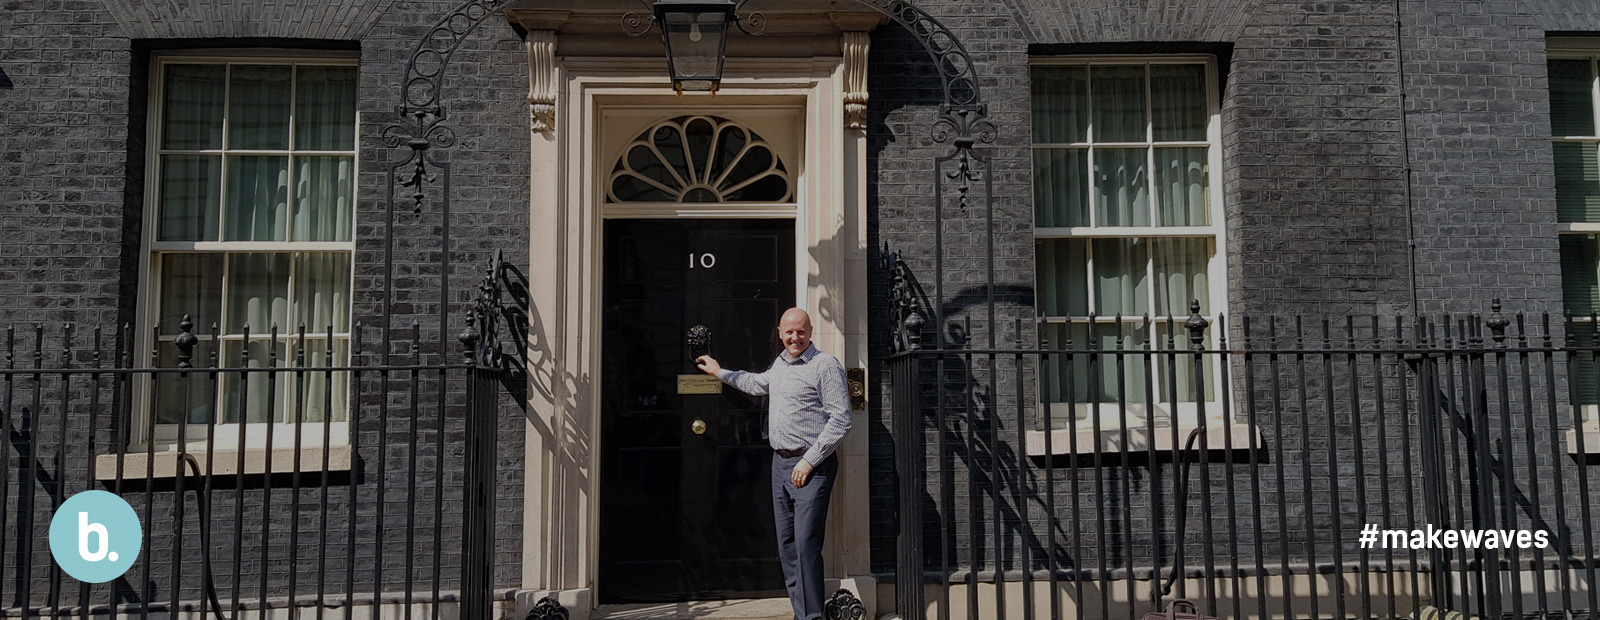 image of Steve Bishop outside 10 Downing Street